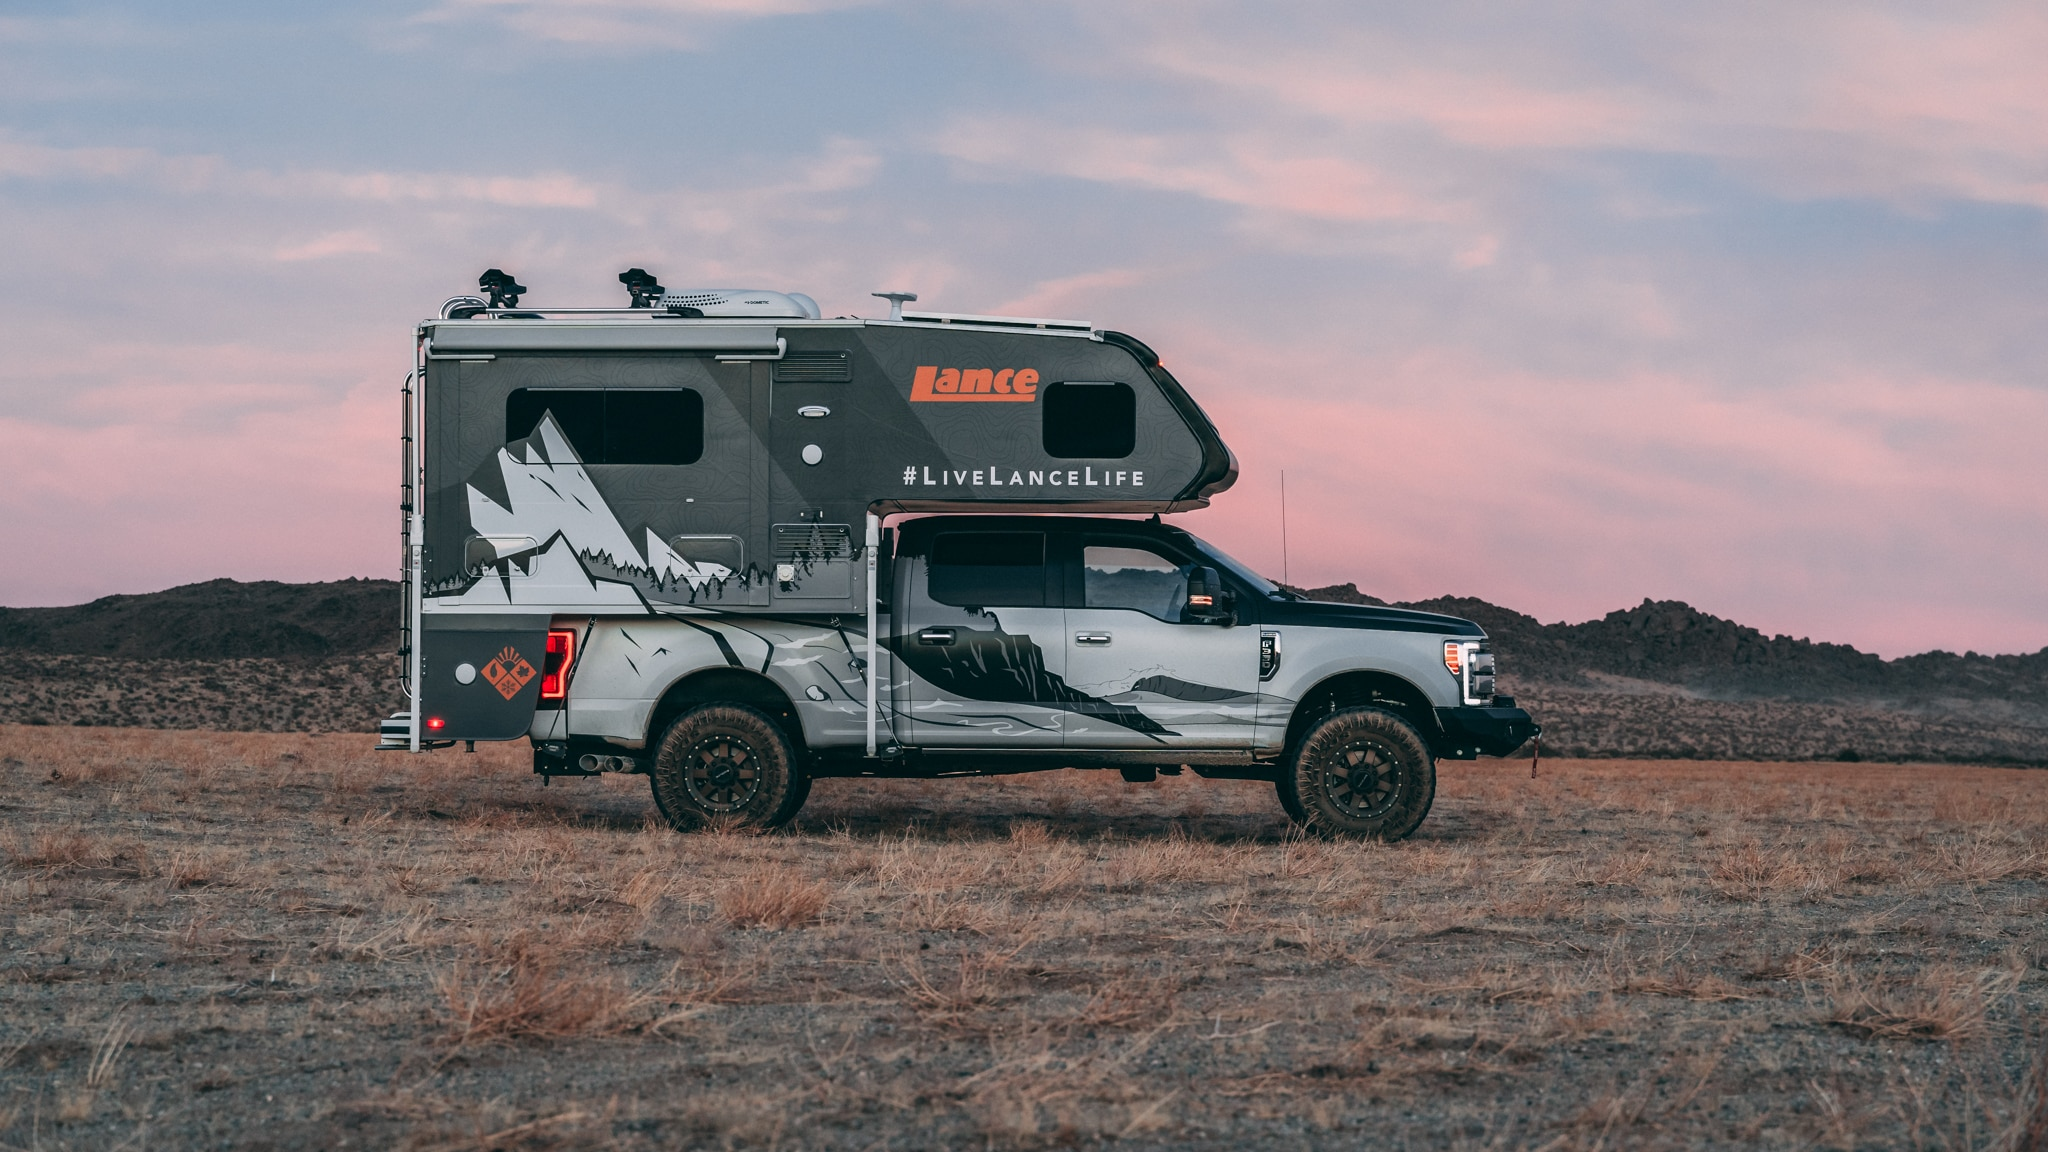 A Three Day Excursion In The Four Season Lance Altimeter Truck Camper